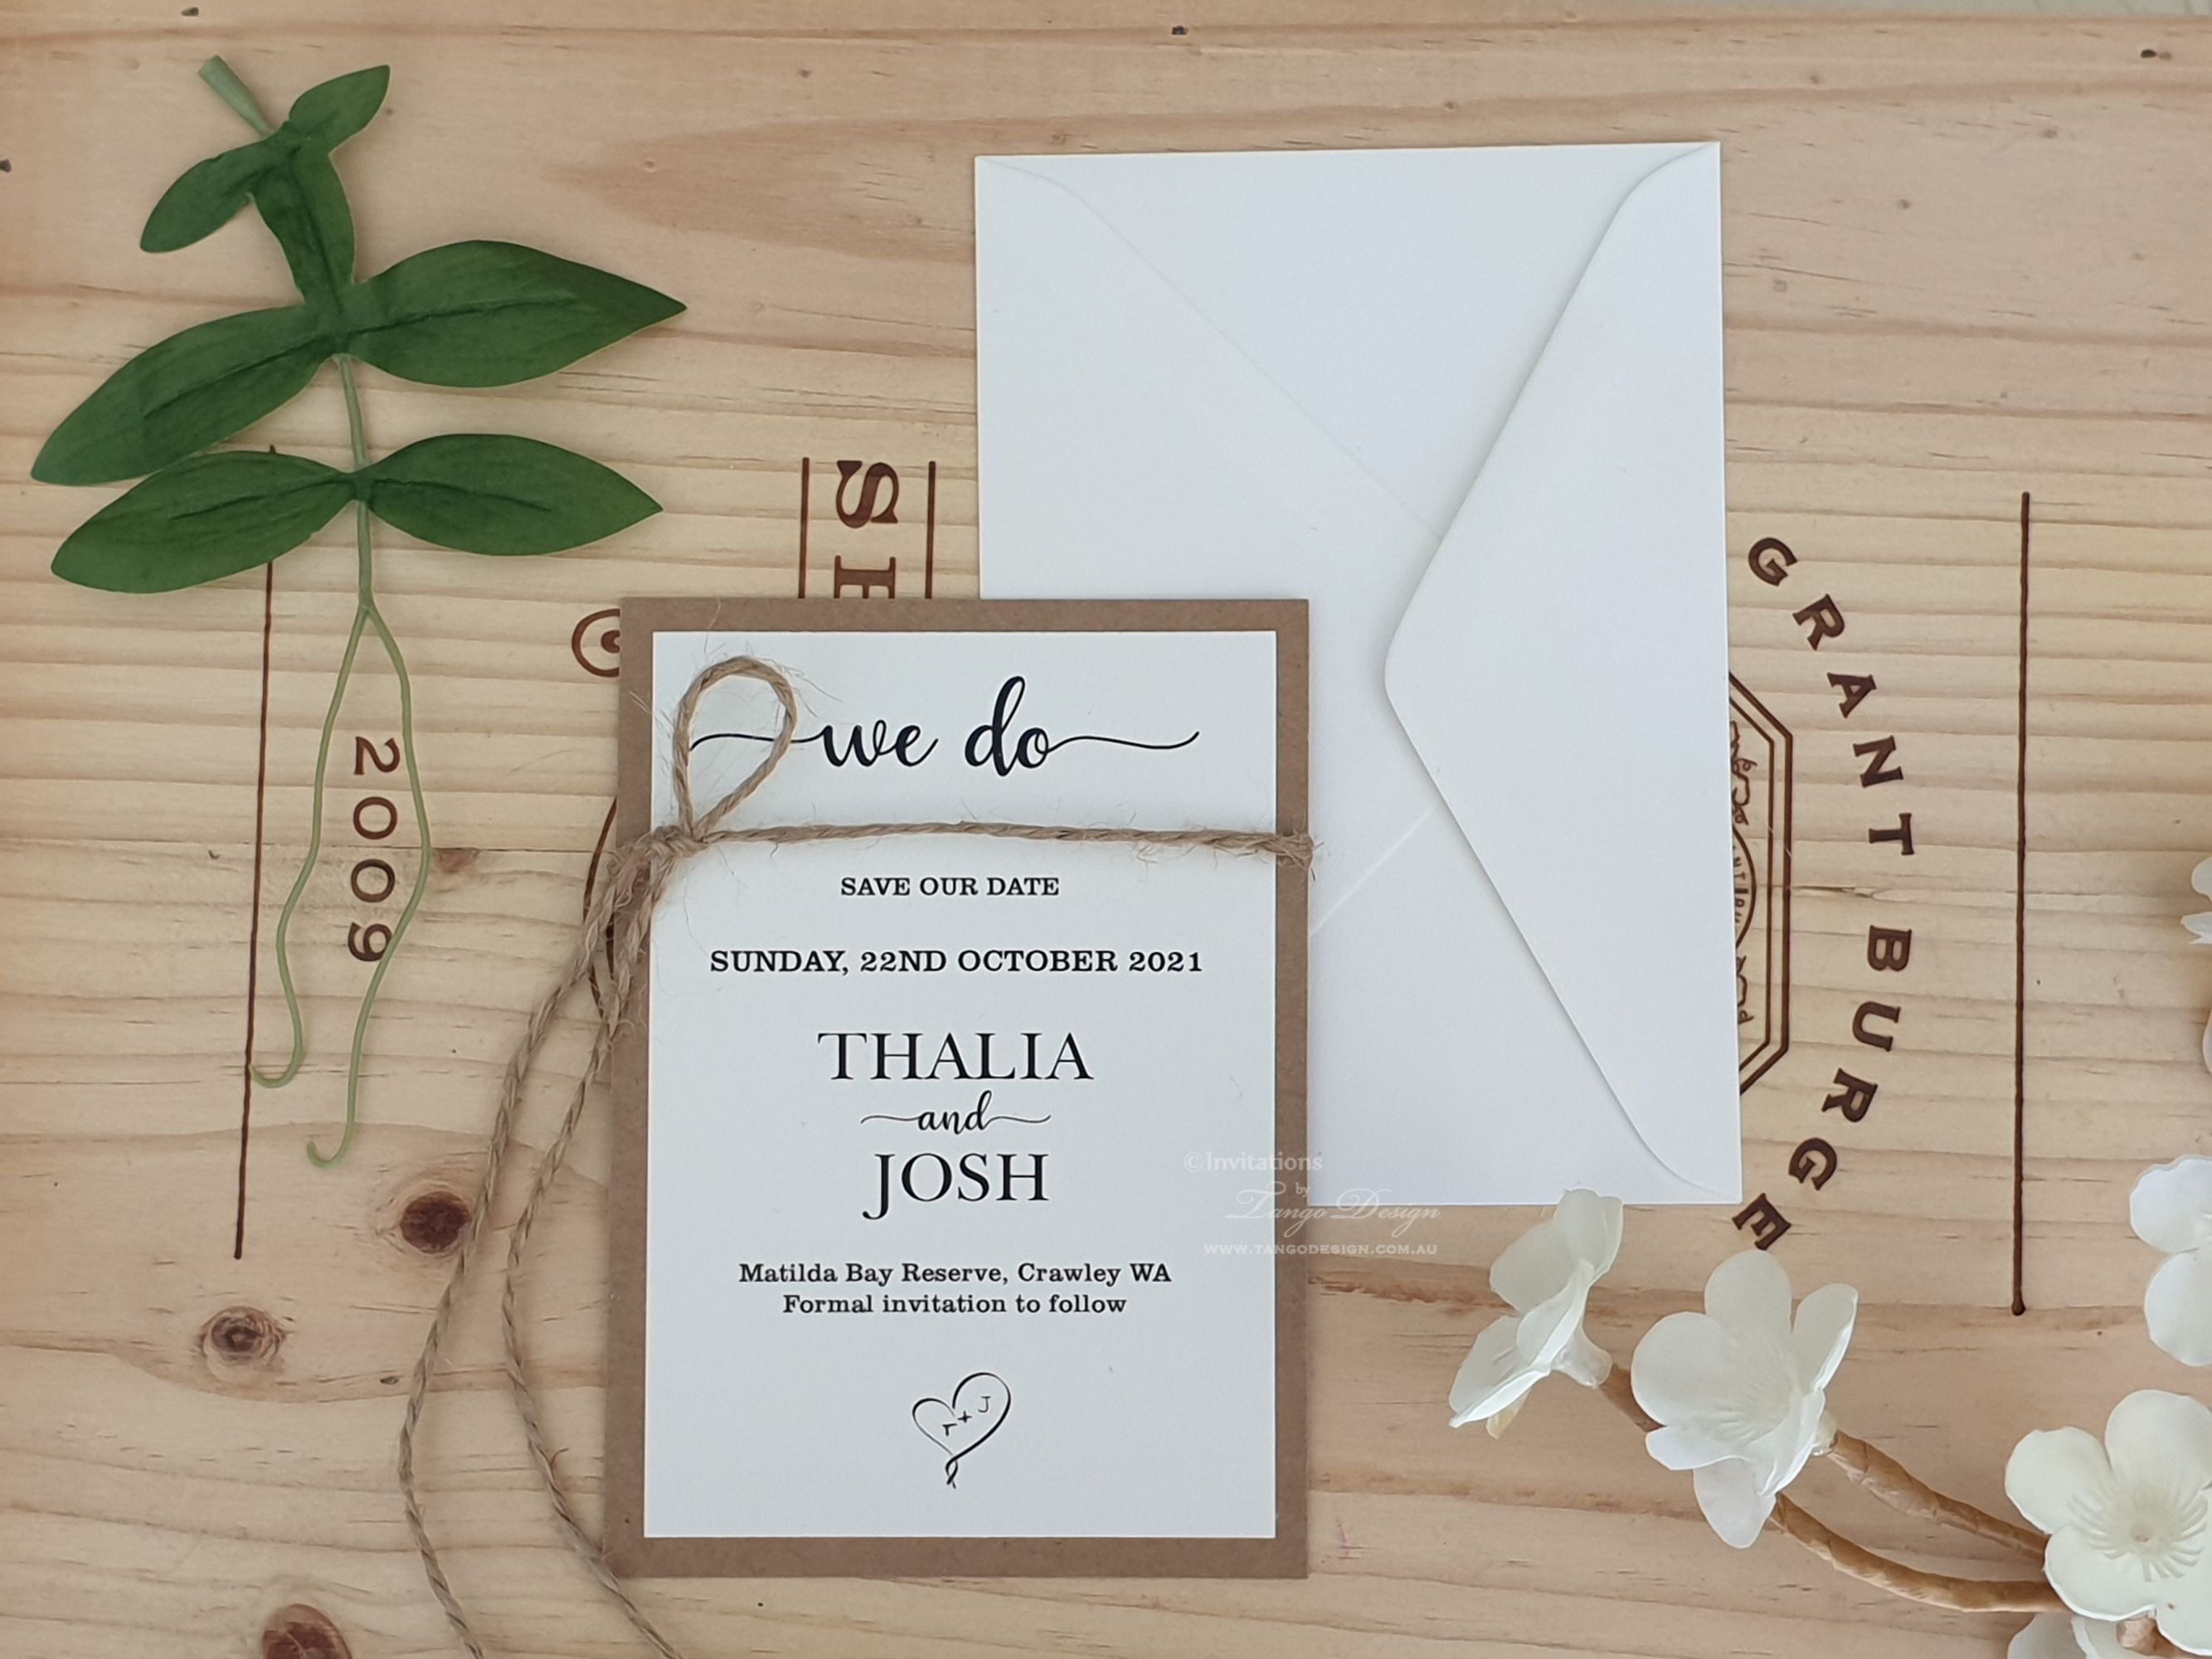 Save The Date Cards Date Change Wedding Save The Dates Printed Boho Invitation Change The Date Corona Personalized Wording Invites In 2020 Save The Date Cards Wedding Saving Wedding Invitations Online